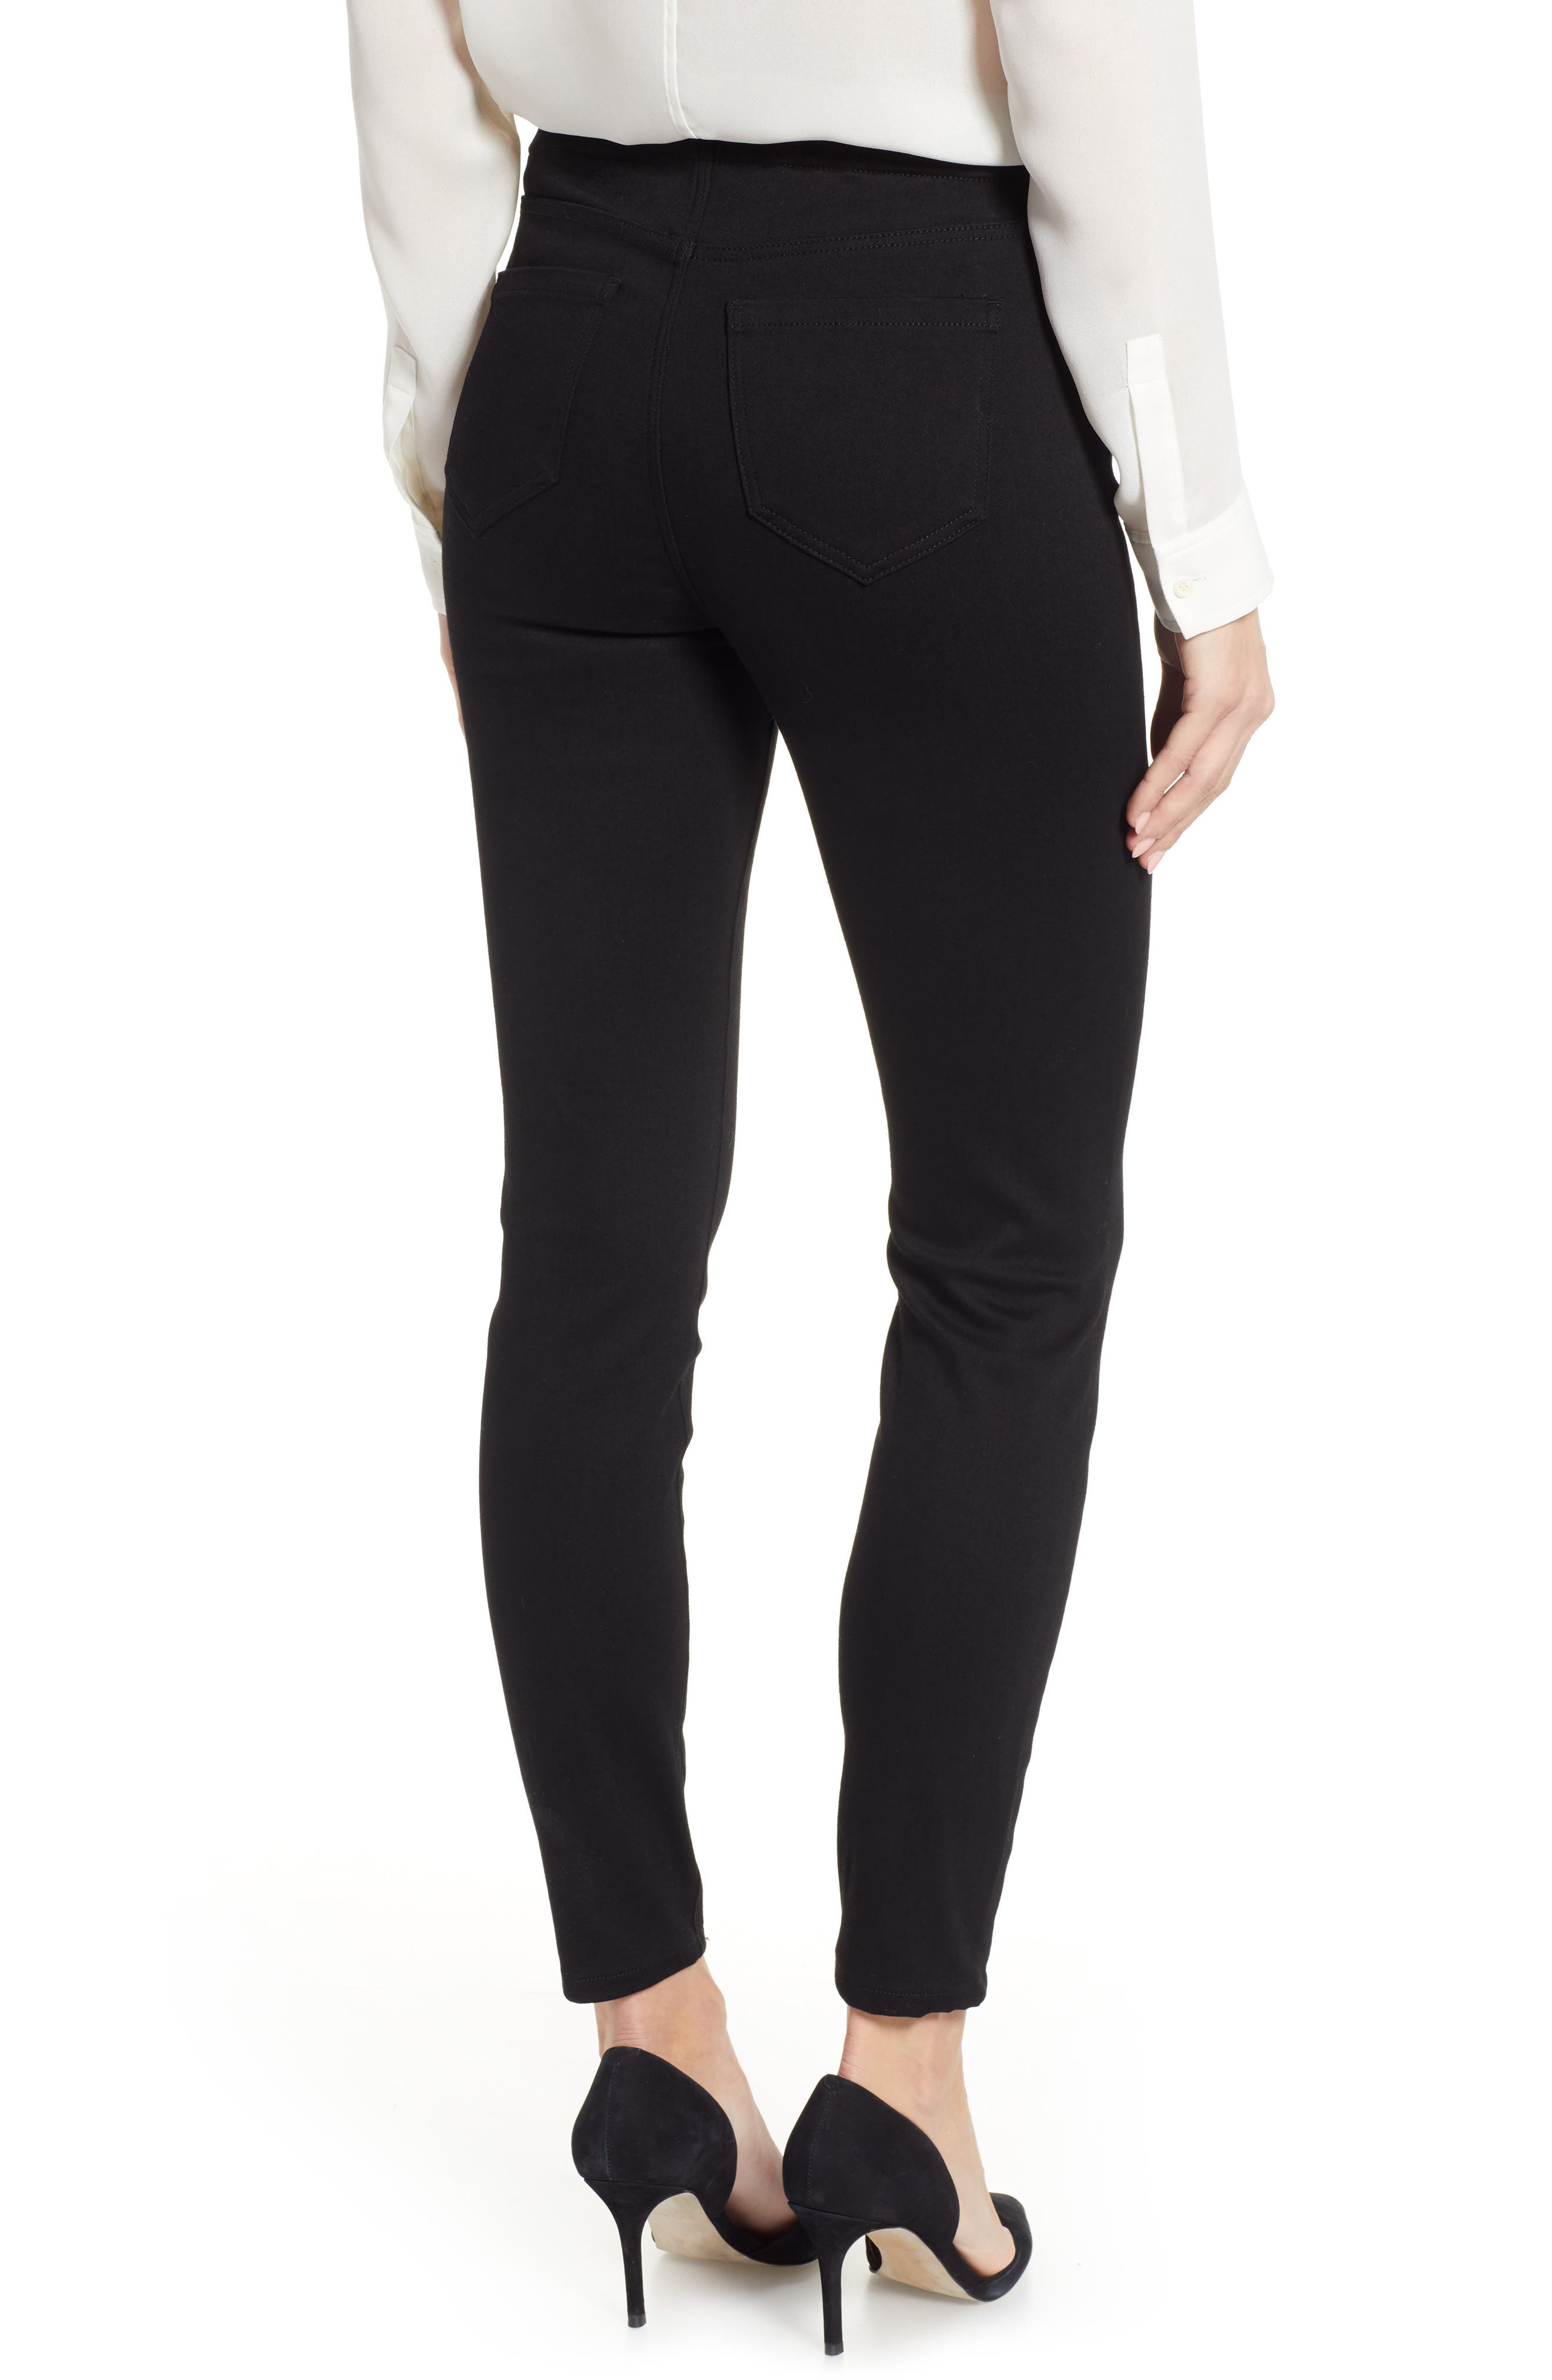 Chloe Pull-On Stretch Skinny Ankle Jeans,                             Alternate thumbnail 2, color,                             BLACK RINSE